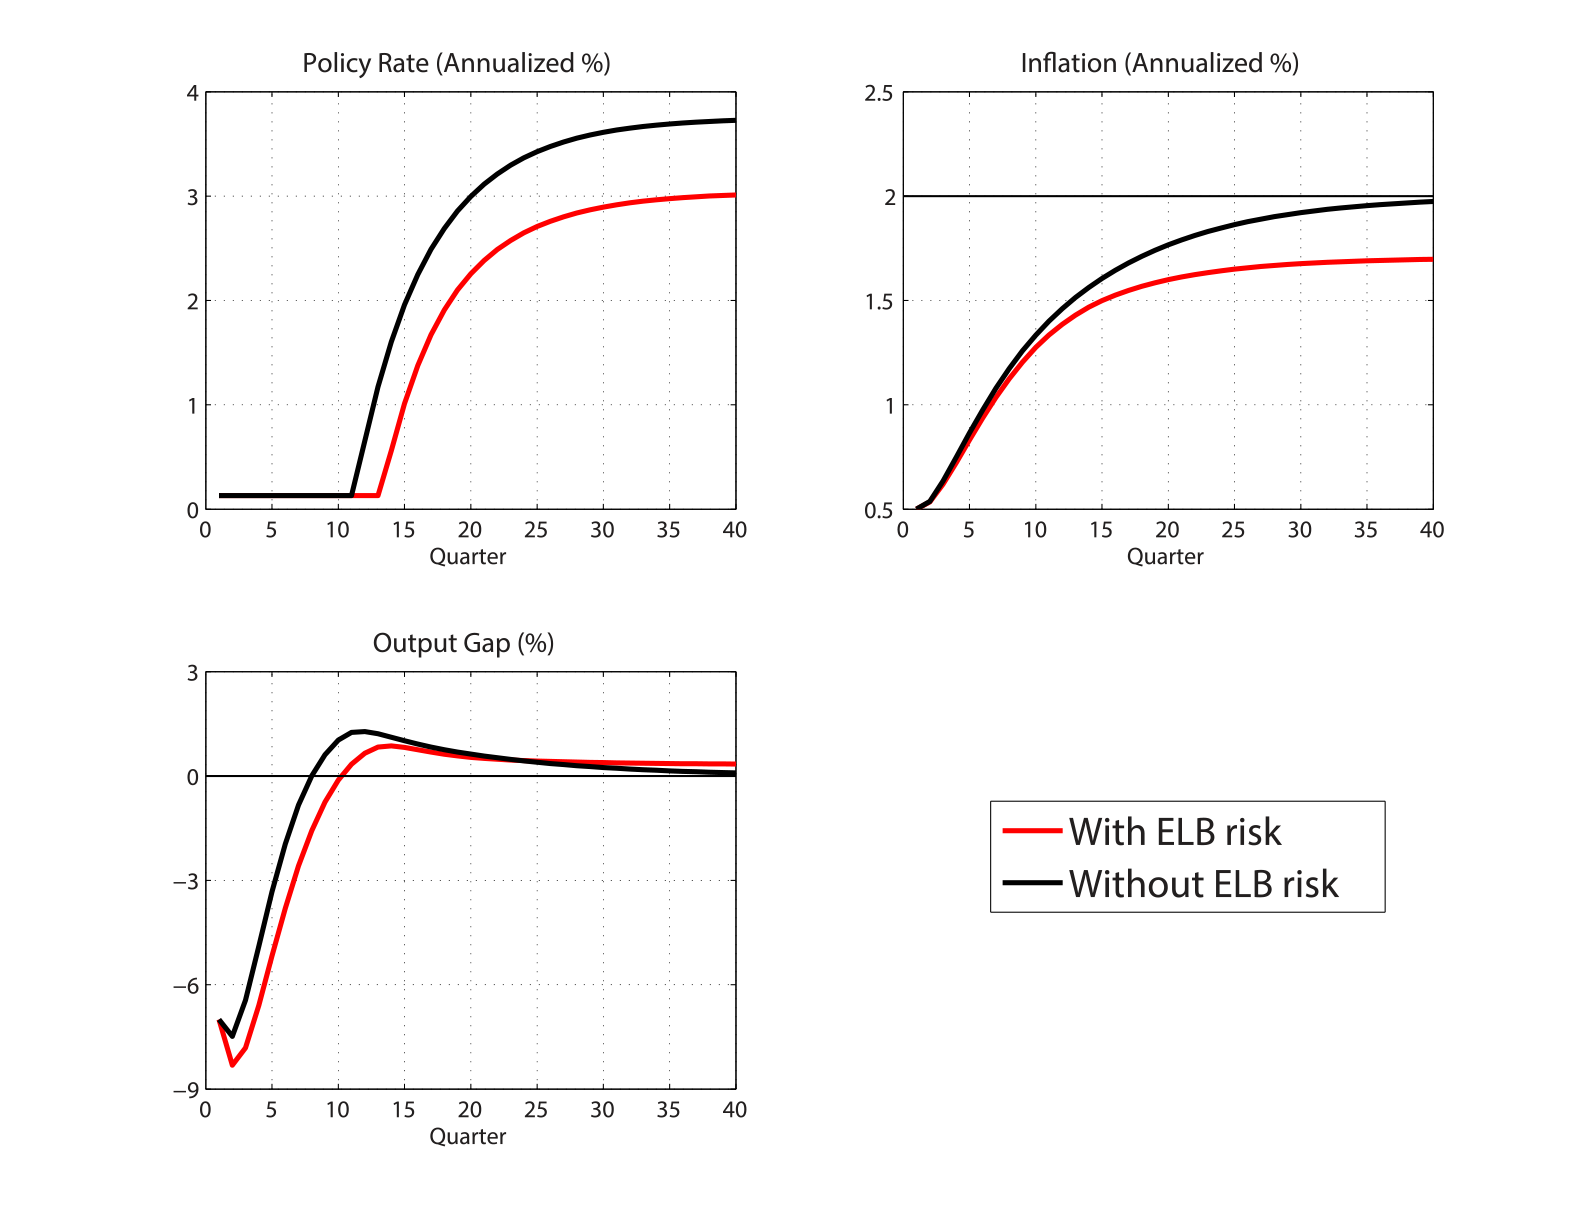 Figure 2: The Effect of the ELB Risk on Projections. See accessible link for data.